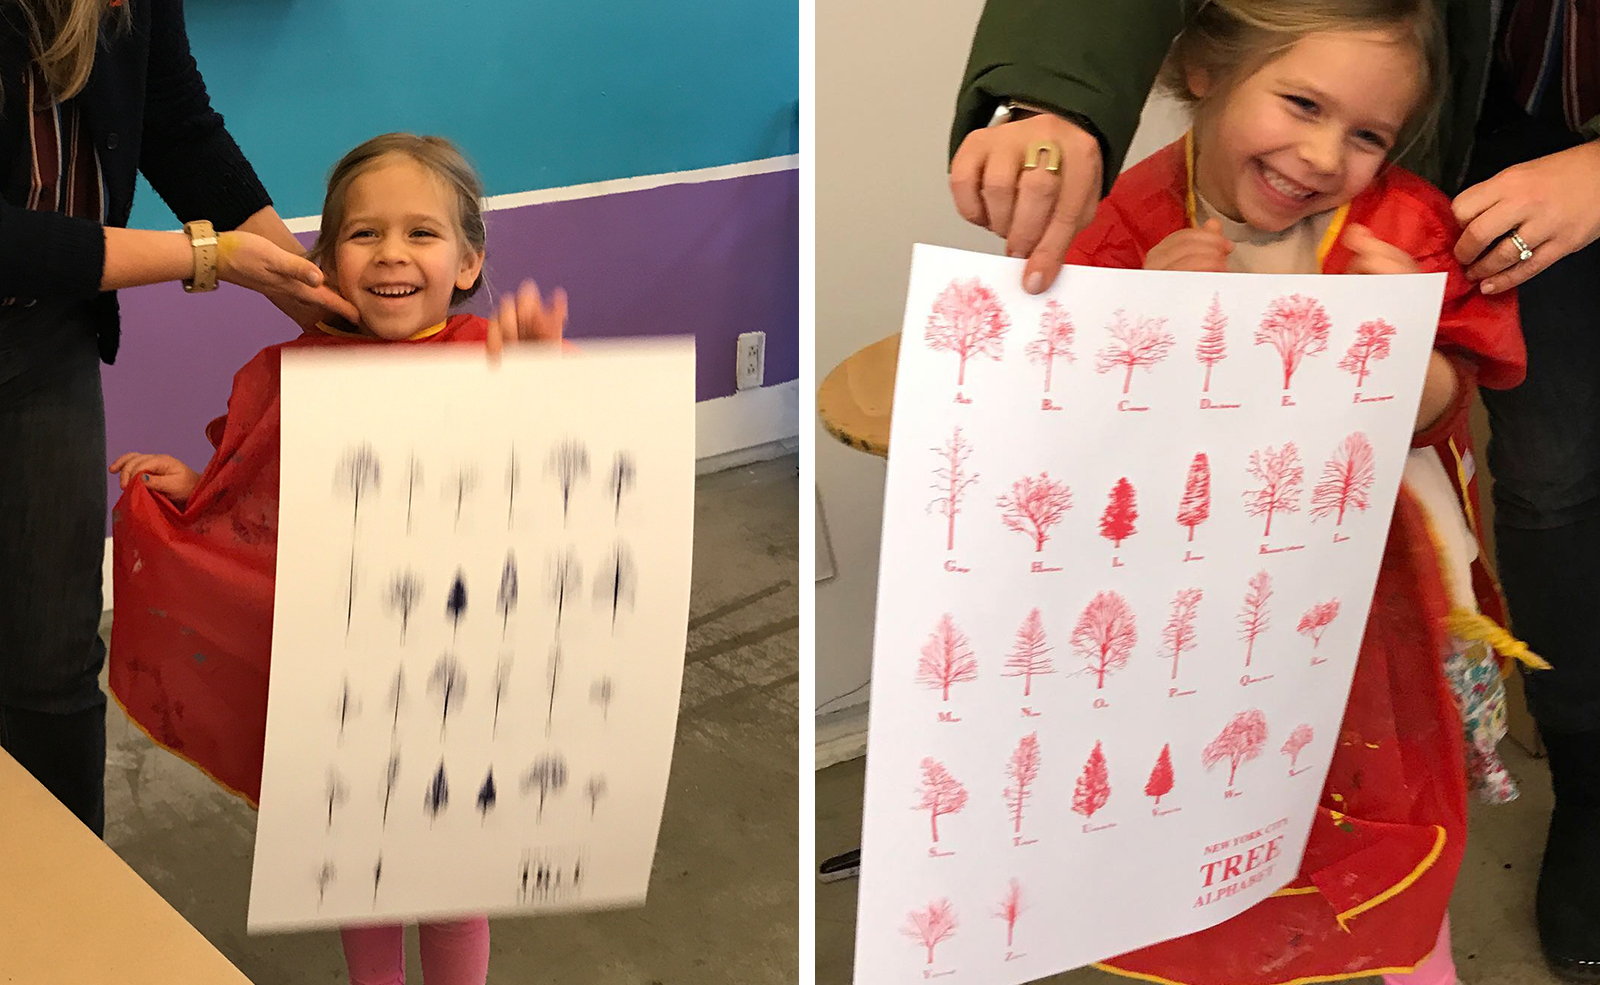 Sharing the  New York City Tree Alphabet  at the Children's Museum of the Arts, January 25, 2019.